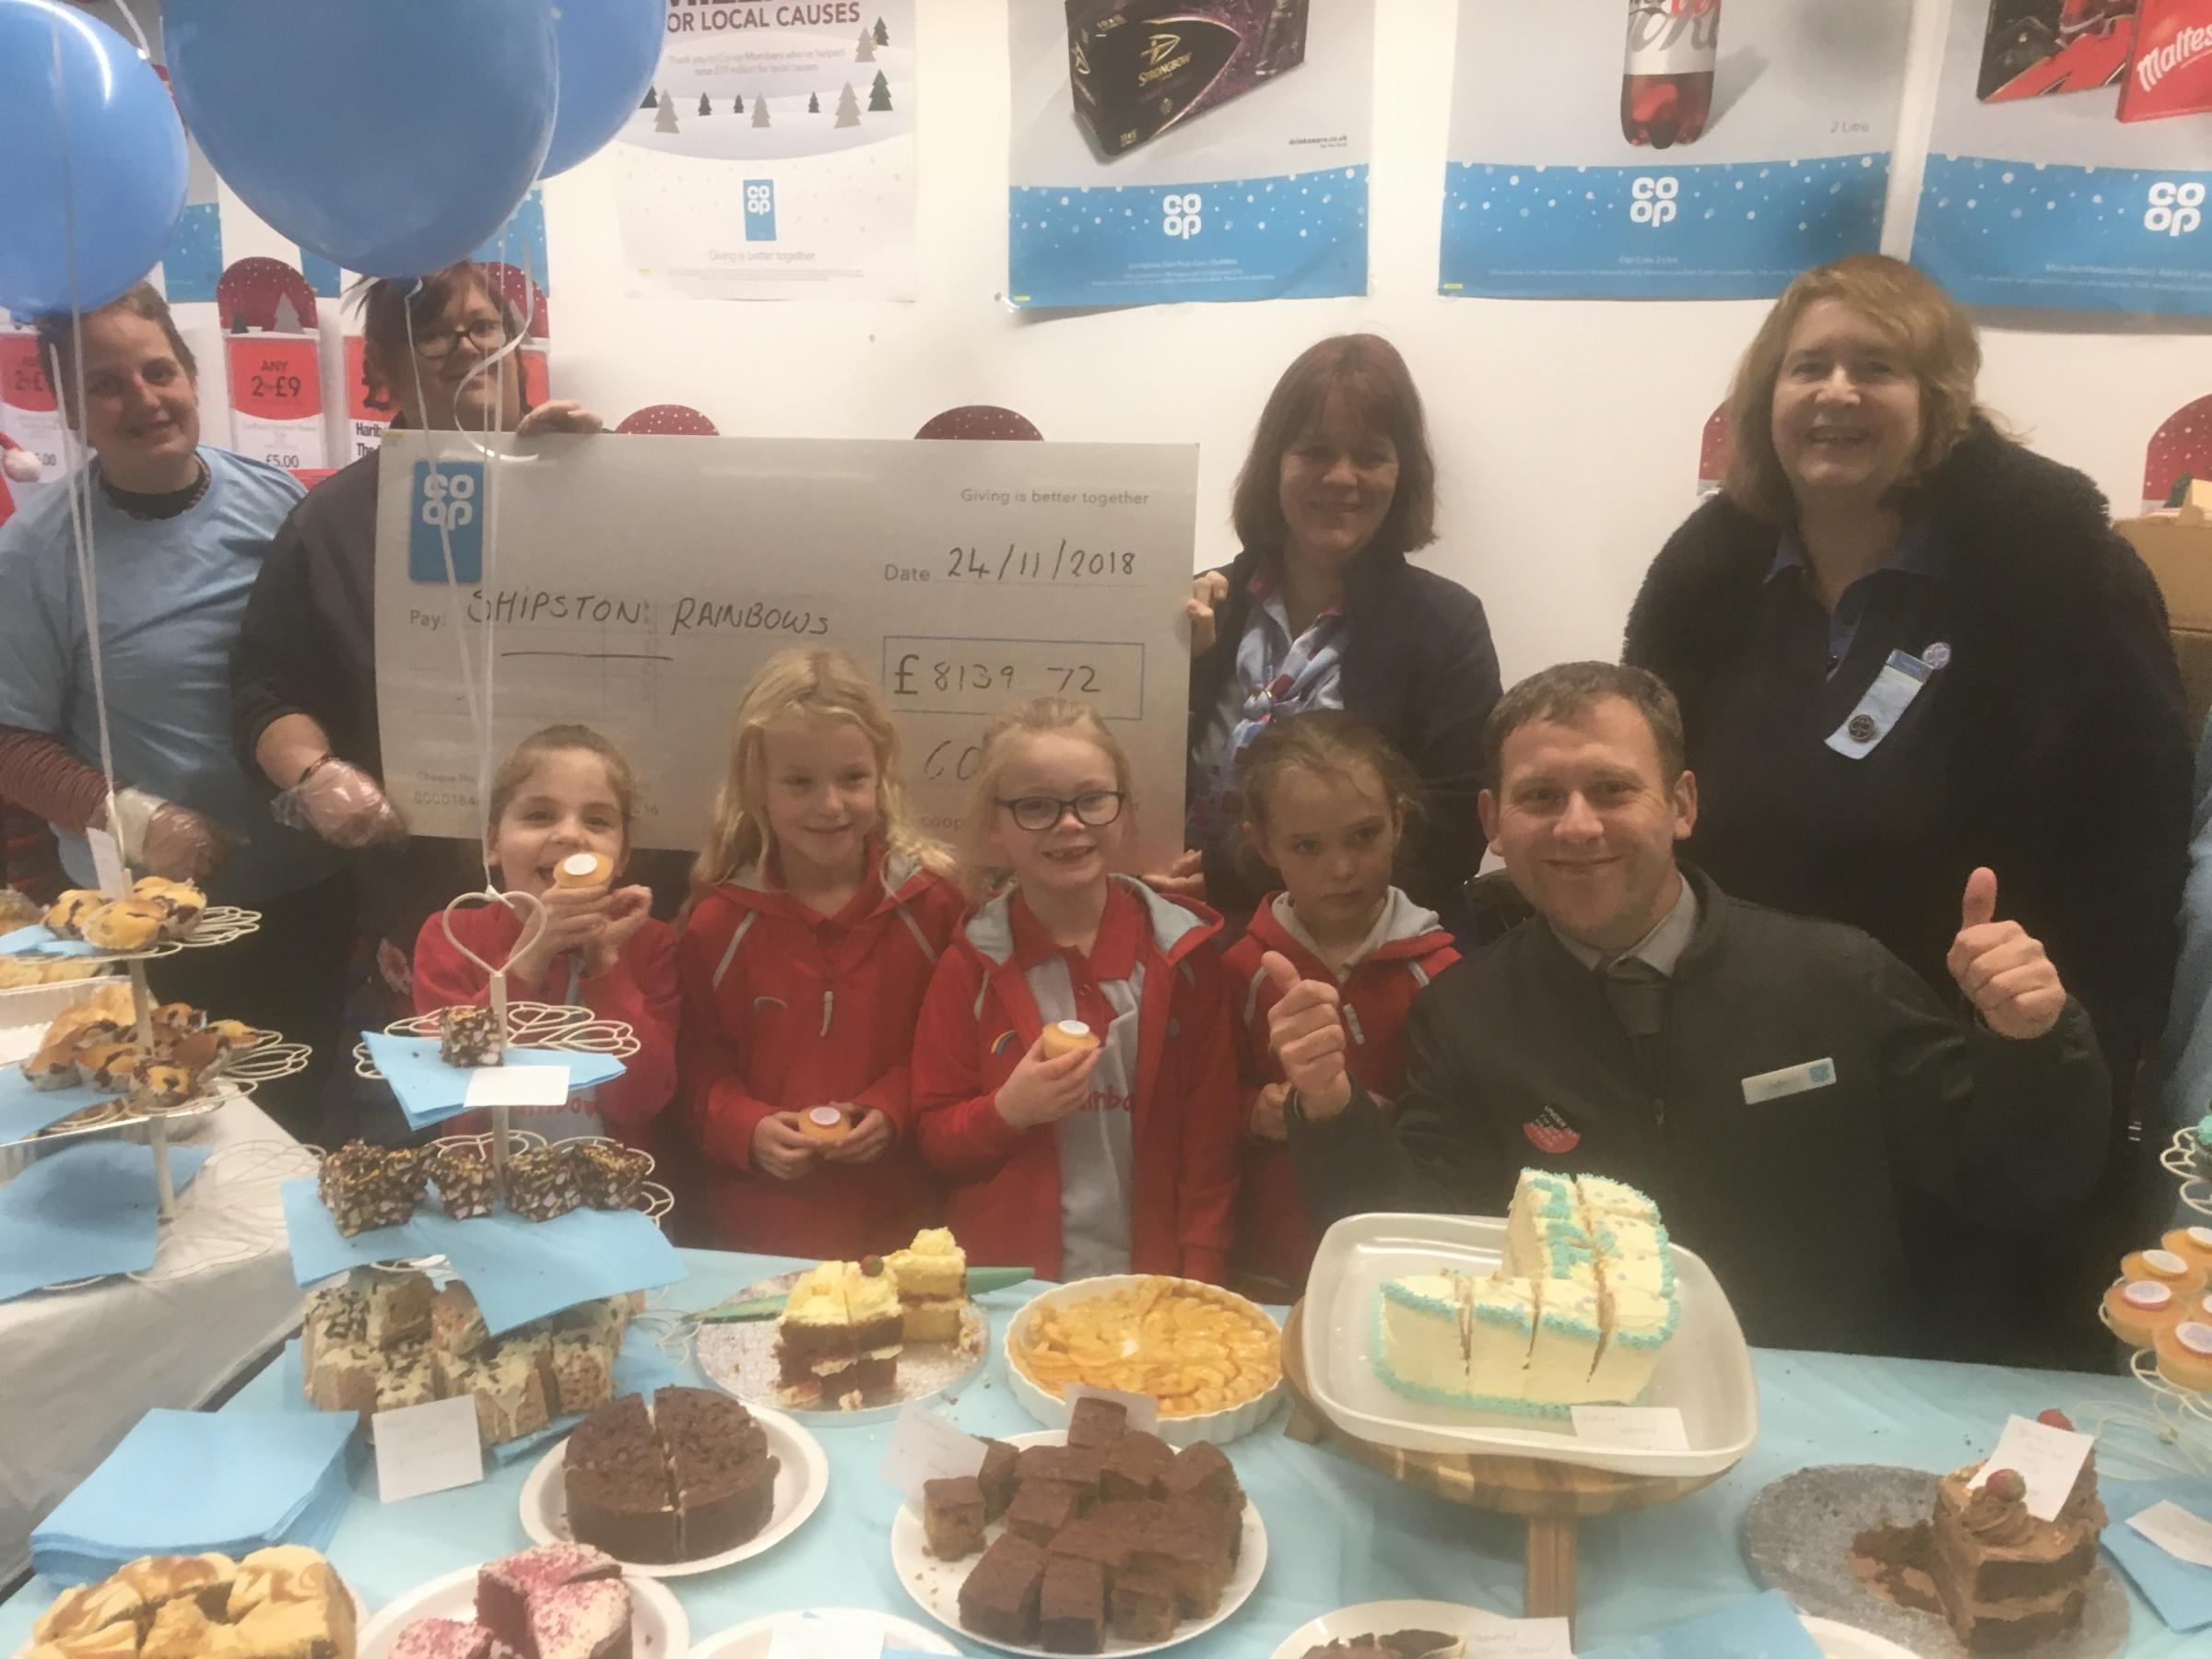 CHEQUE: Shipston on Stour Rainbows receive Co-op cash boost